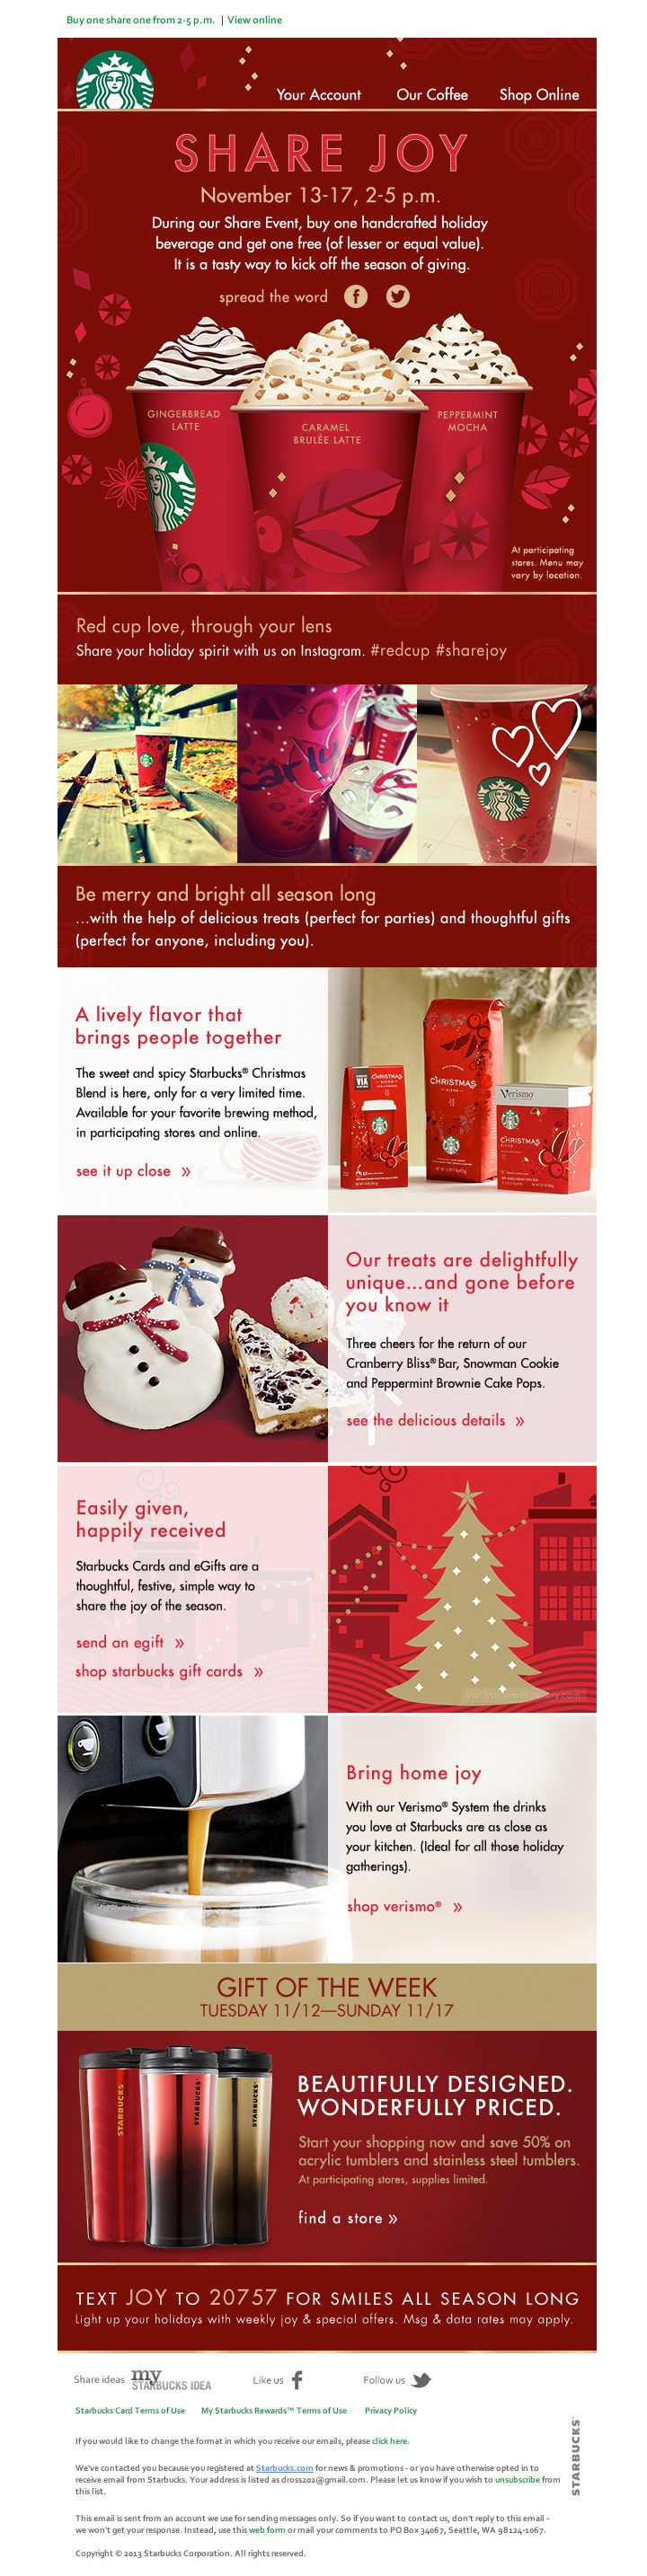 starbucks christmas email